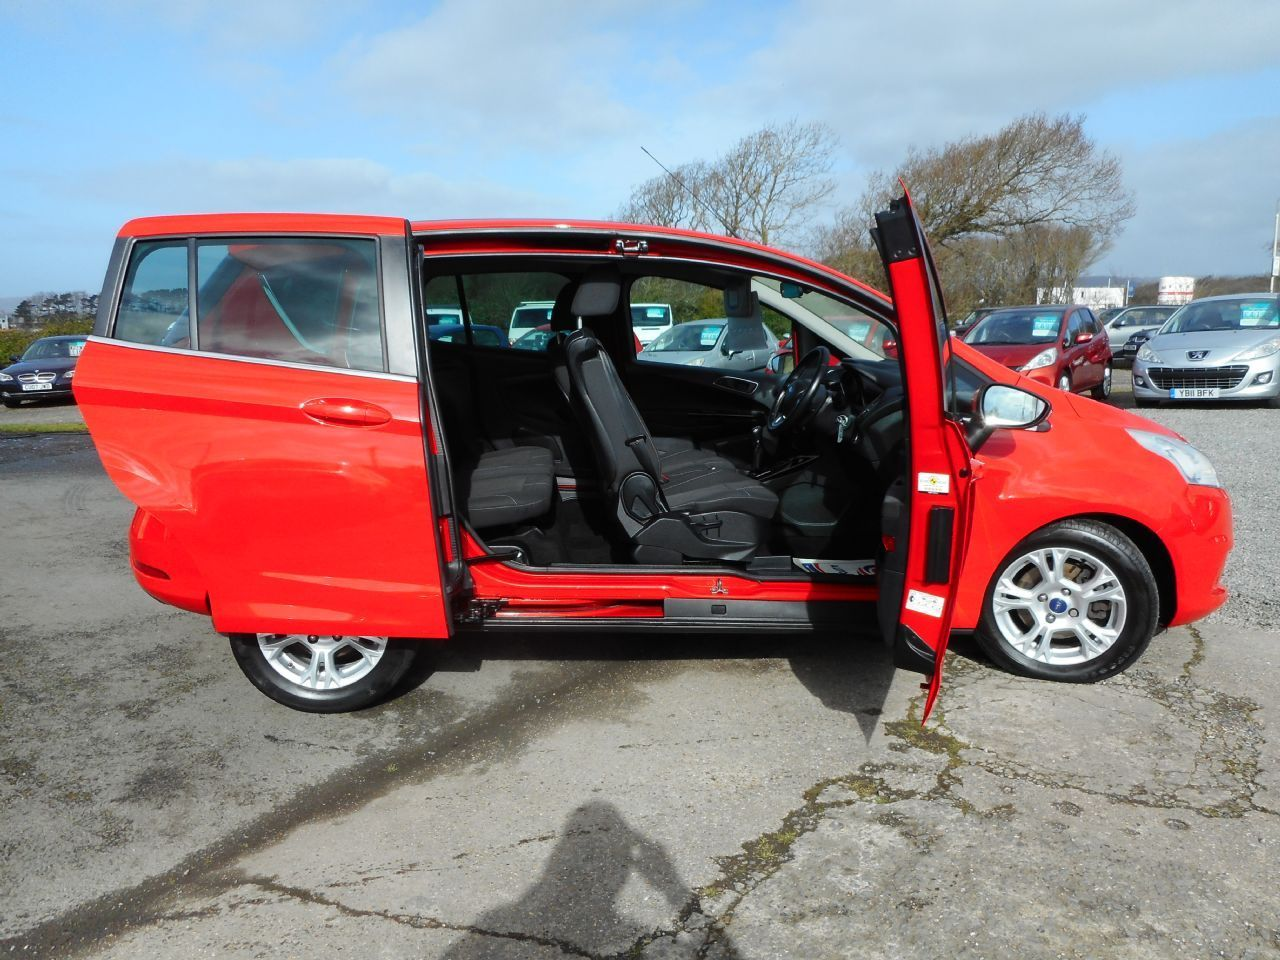 FORD B-MAX 1.4 90PS Zetec (2013) - Picture 5